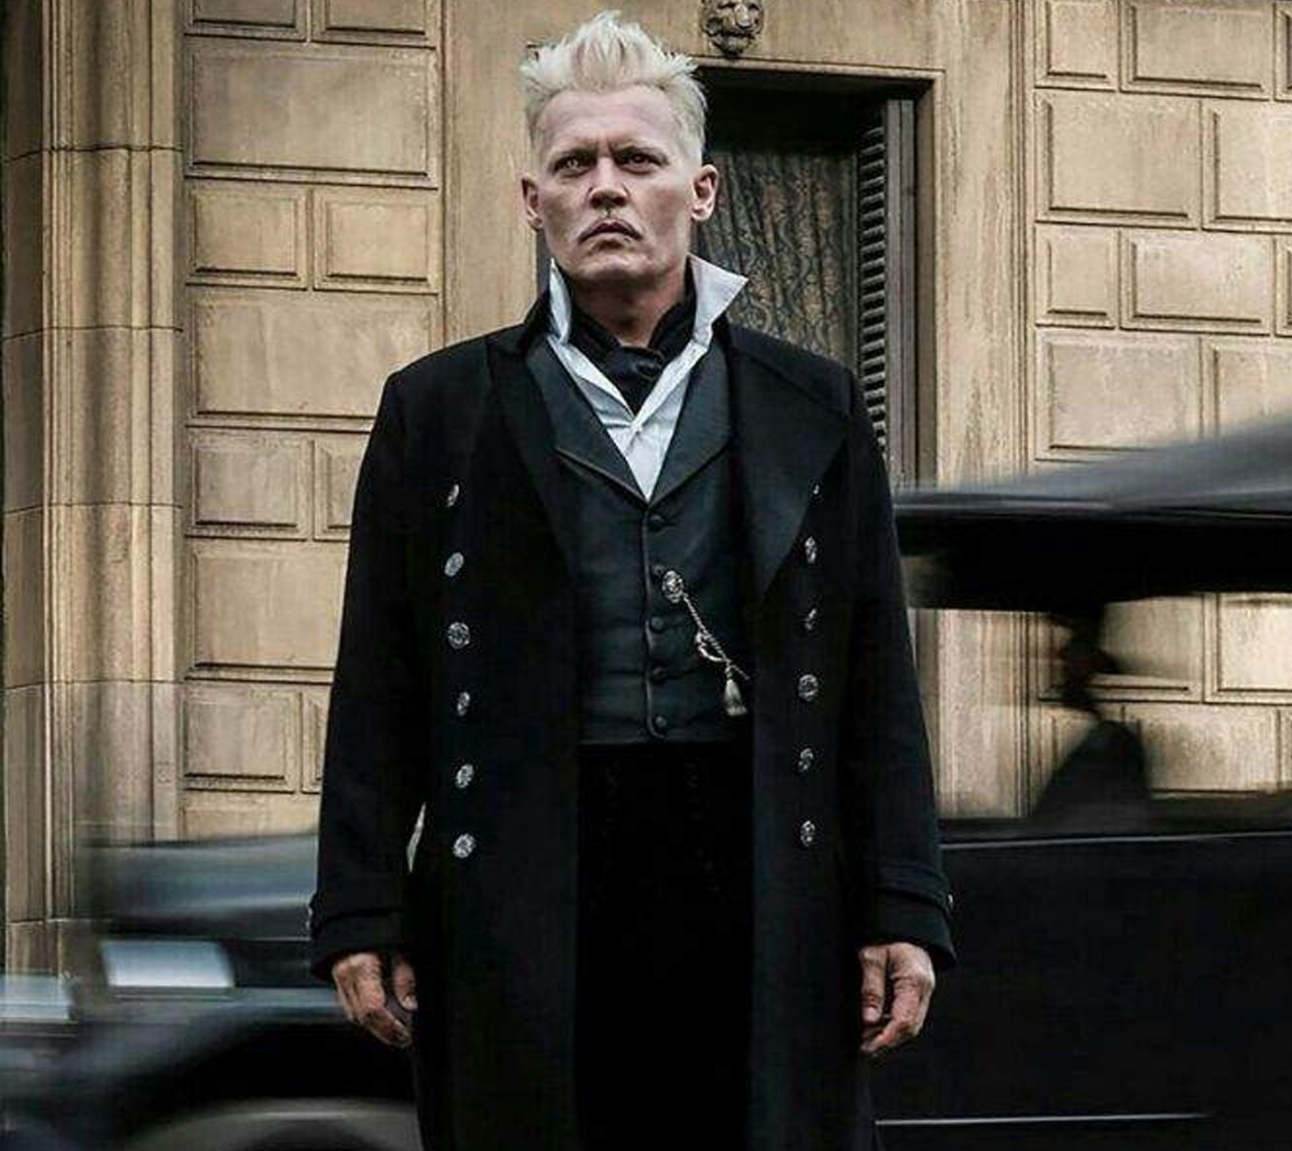 Grindelwald from Fantastic Beasts 2